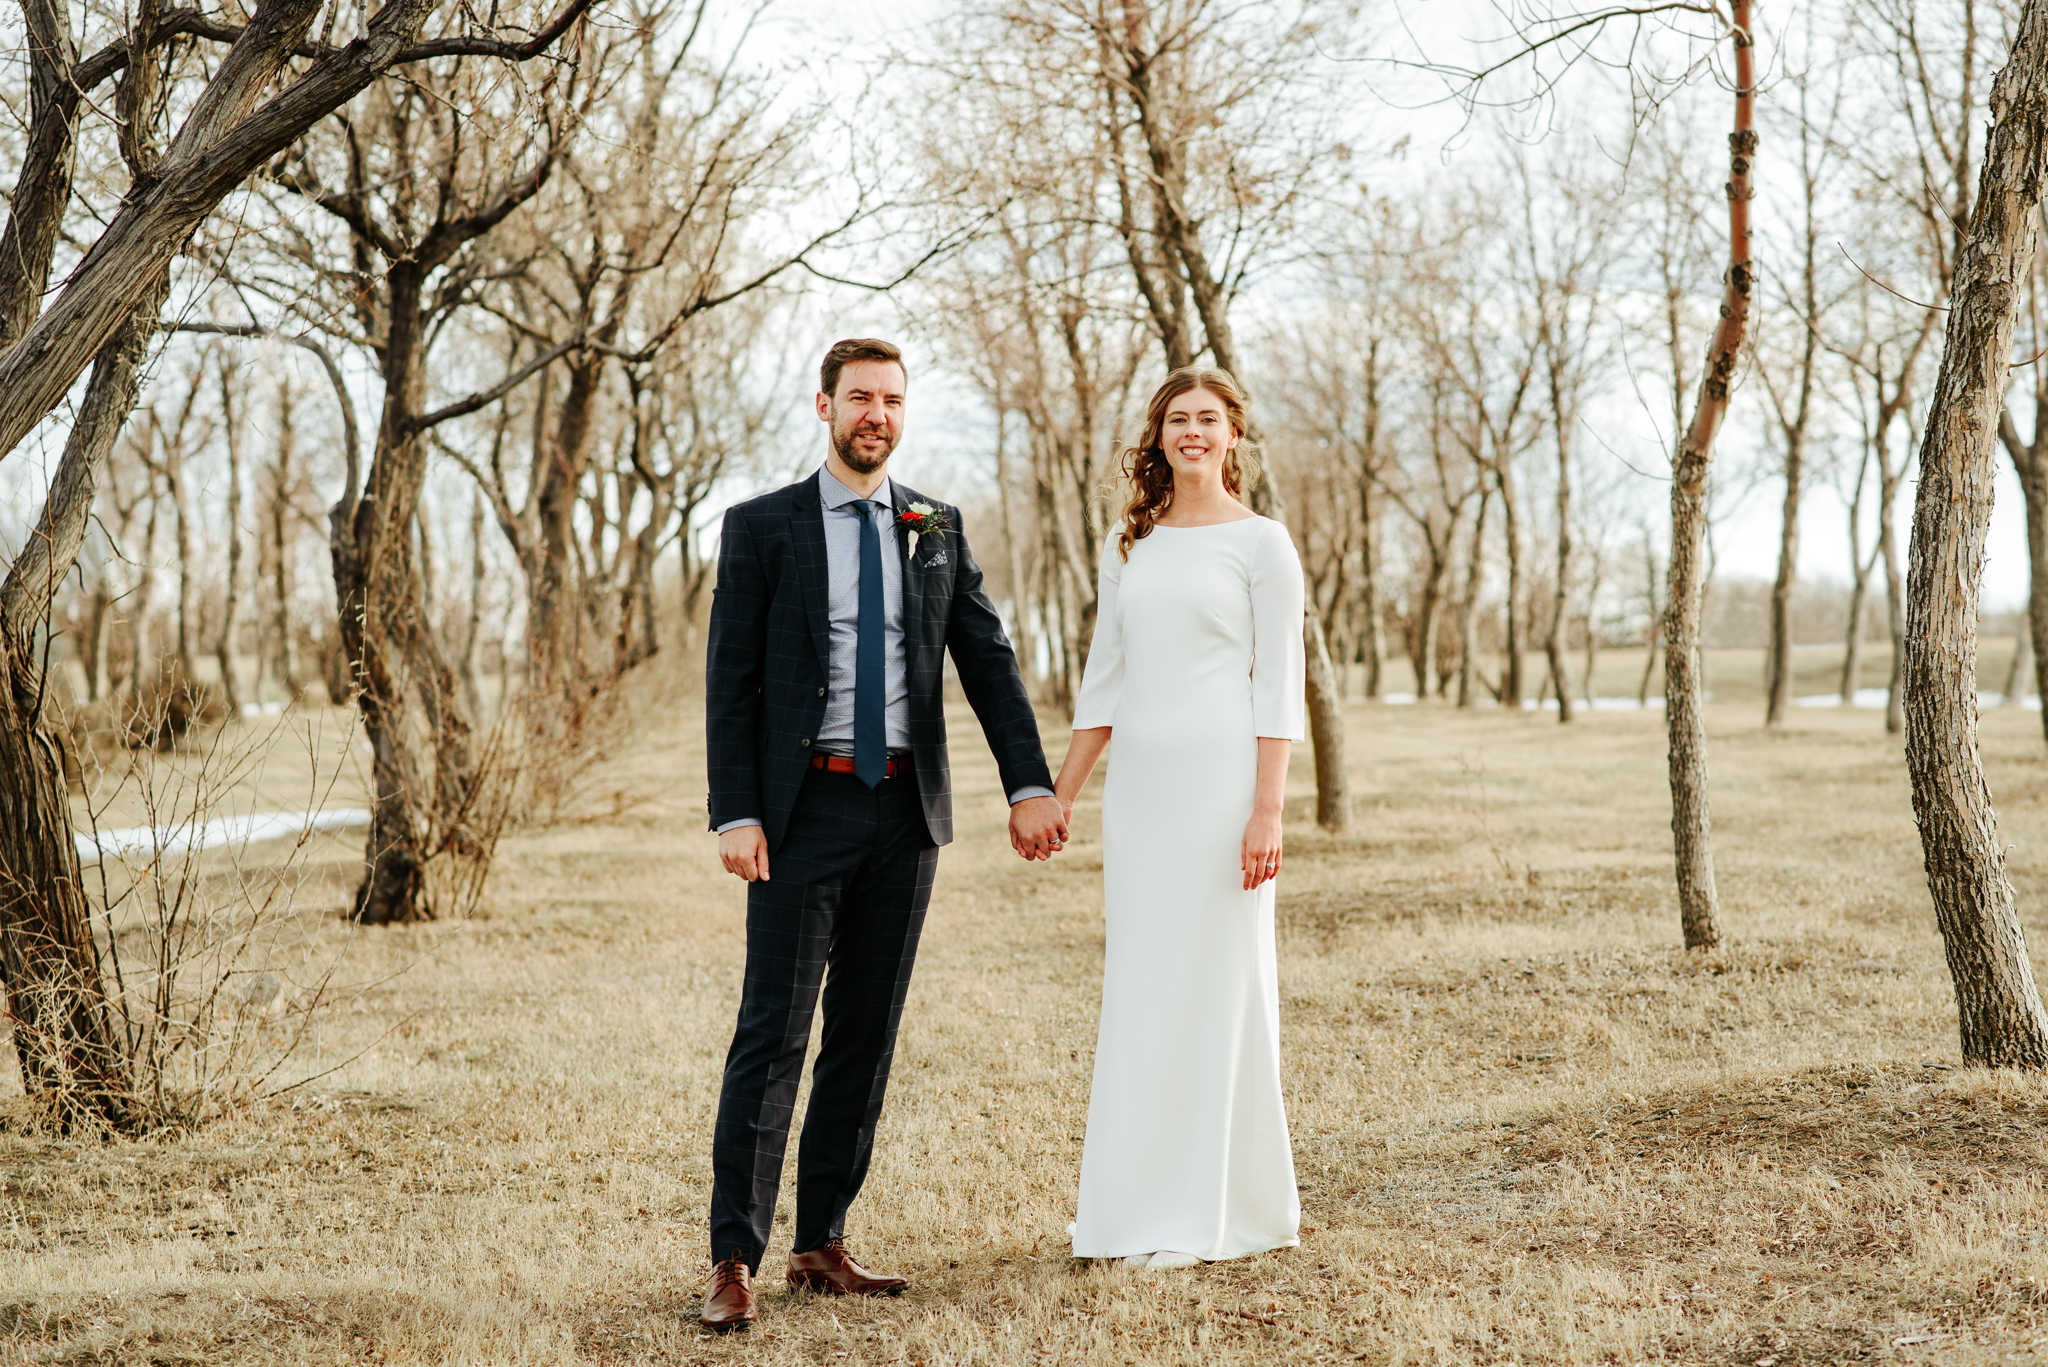 lethbridge-wedding-photographer-love-and-be-loved-photography-kris-amy-paradise-canyon-image-picture-photo-28.jpg